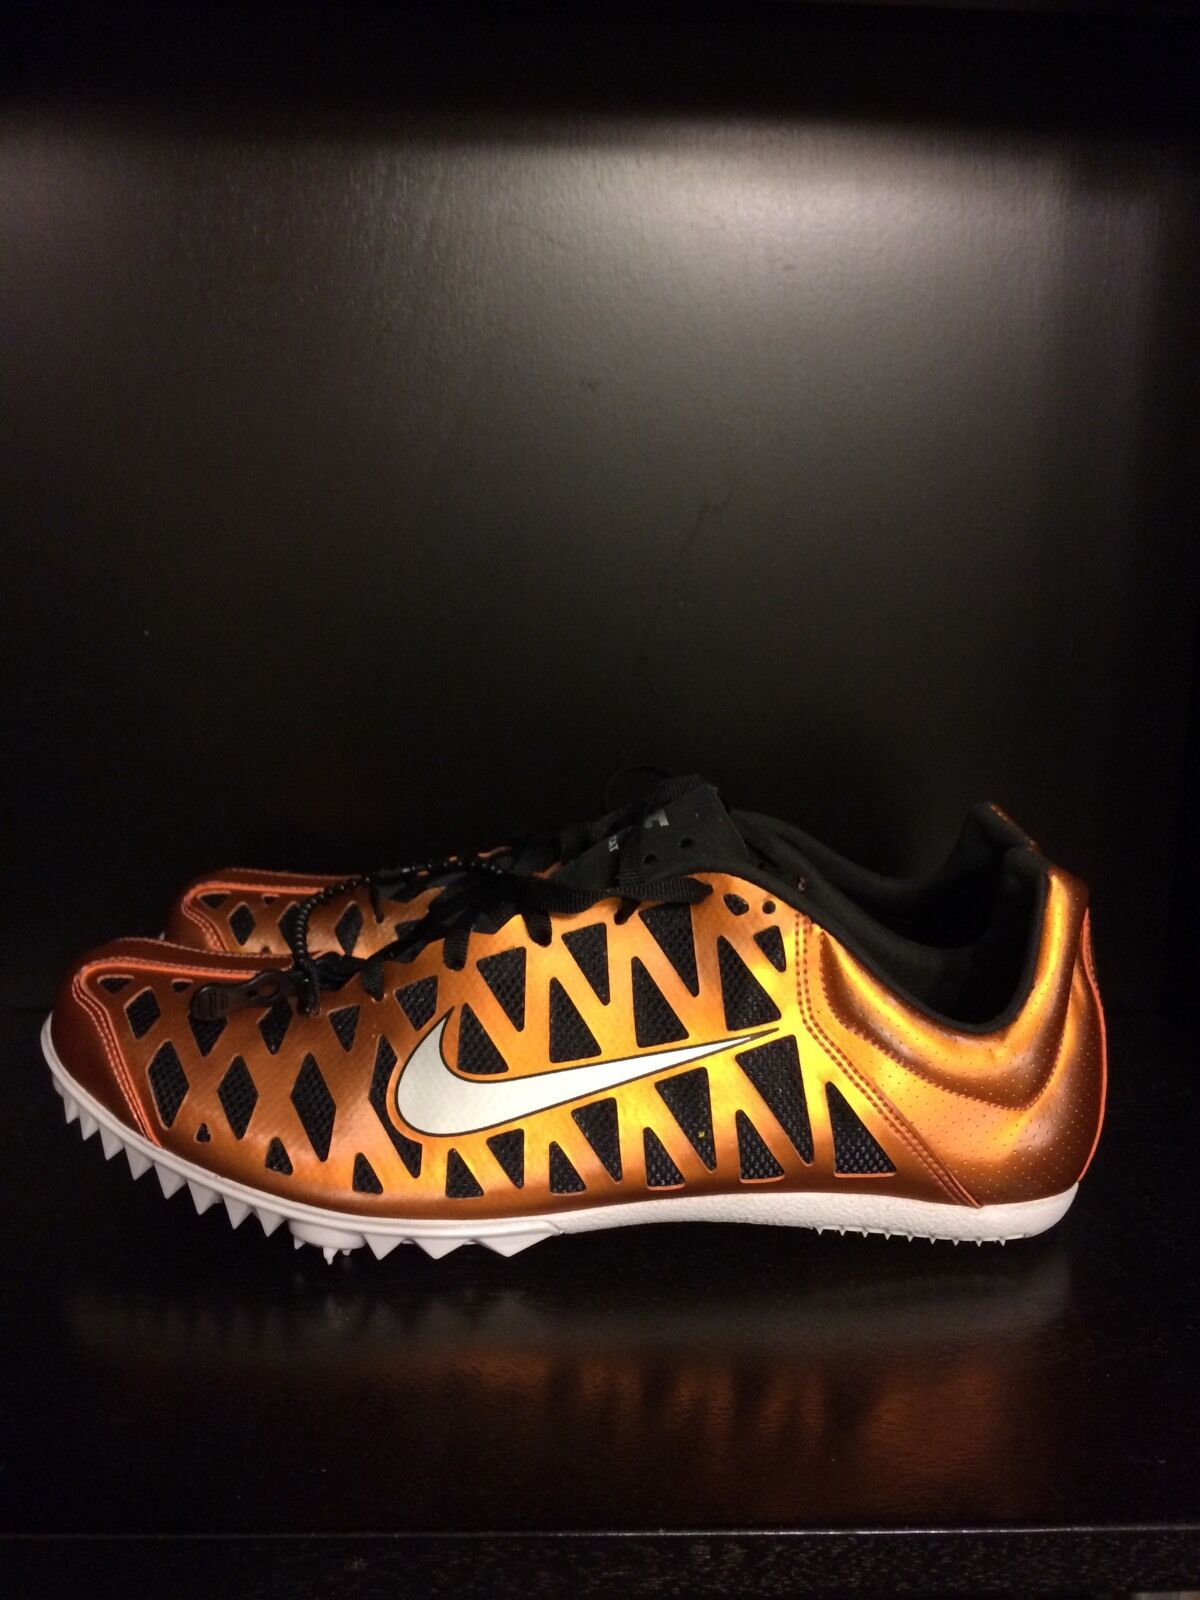 Cheap and beautiful fashion Nike Zoom Maxcat 3 Track Running Spikes Men's 8 Mins 9.5 NNB 414531 001 Price reduction